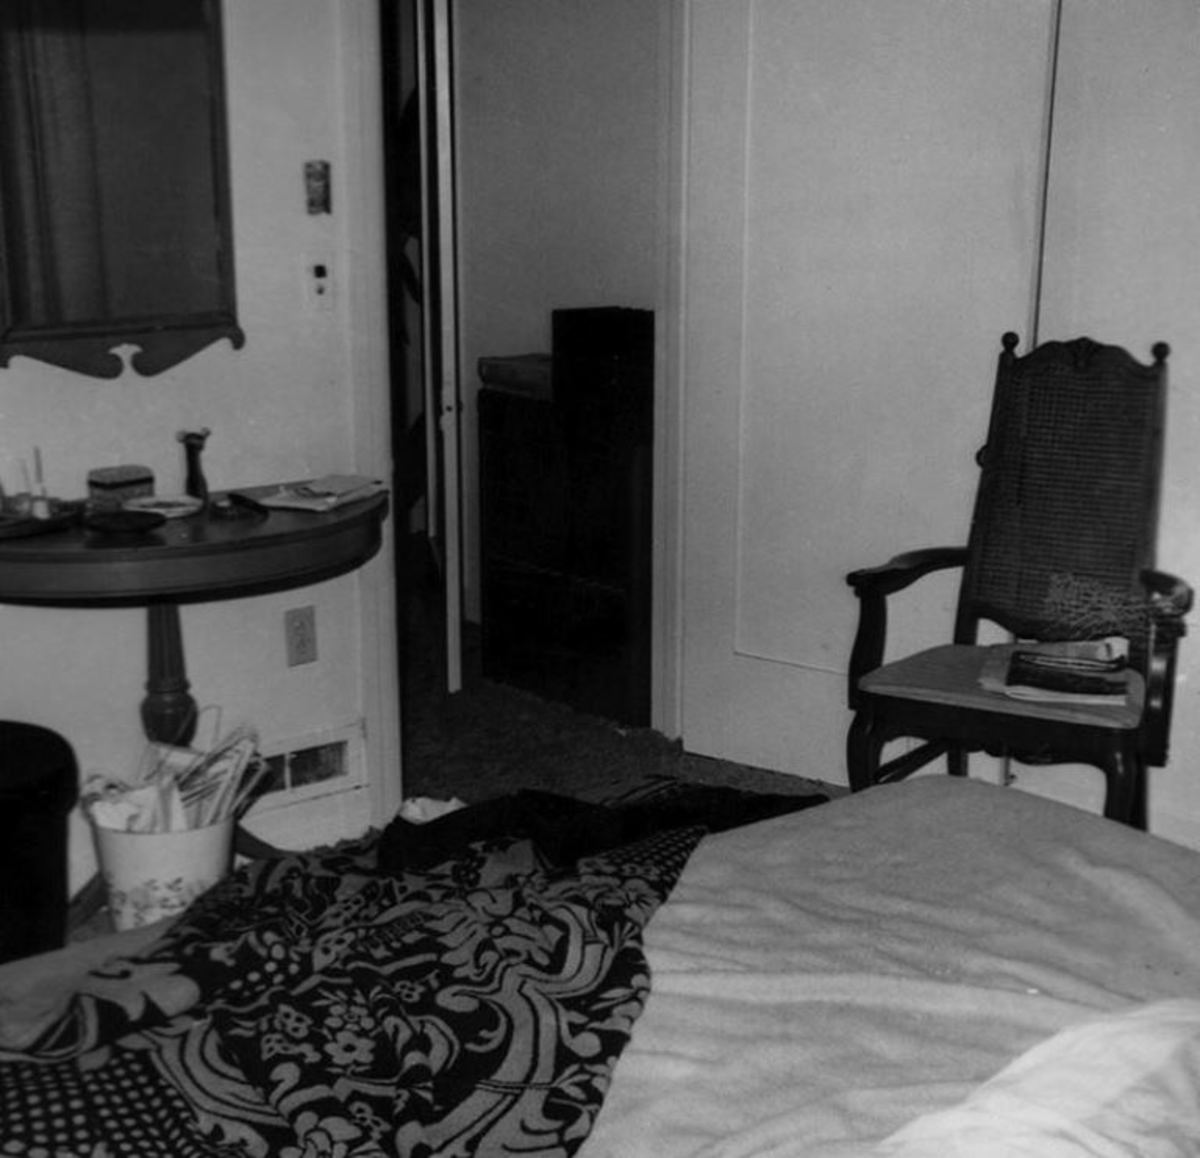 The bedroom where Rosemary was killed.